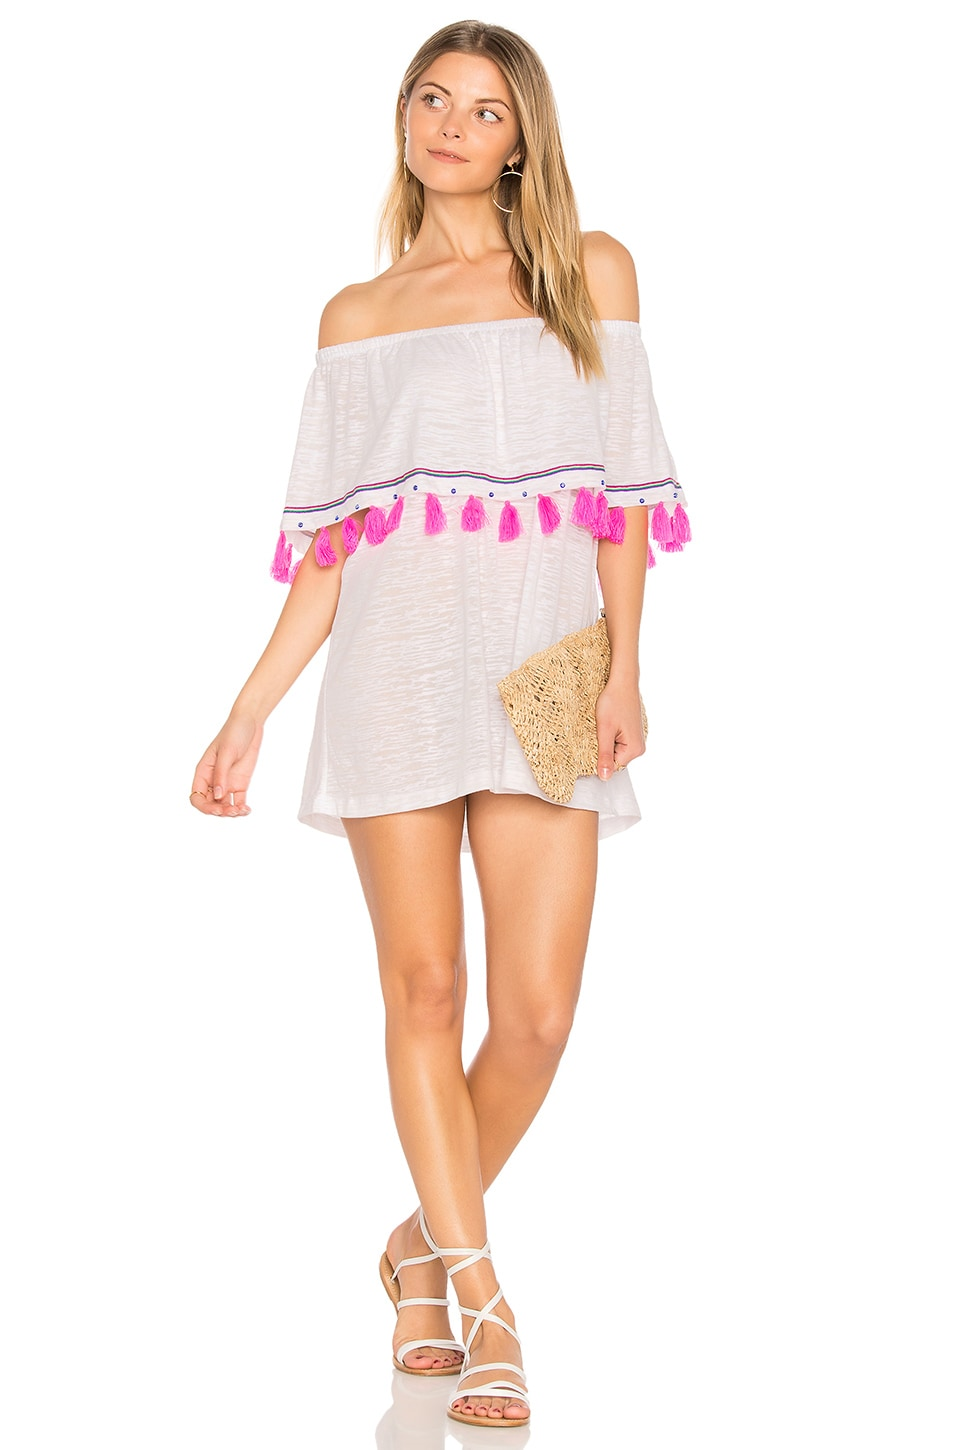 Pitusa Ibiza Mini Dress in White